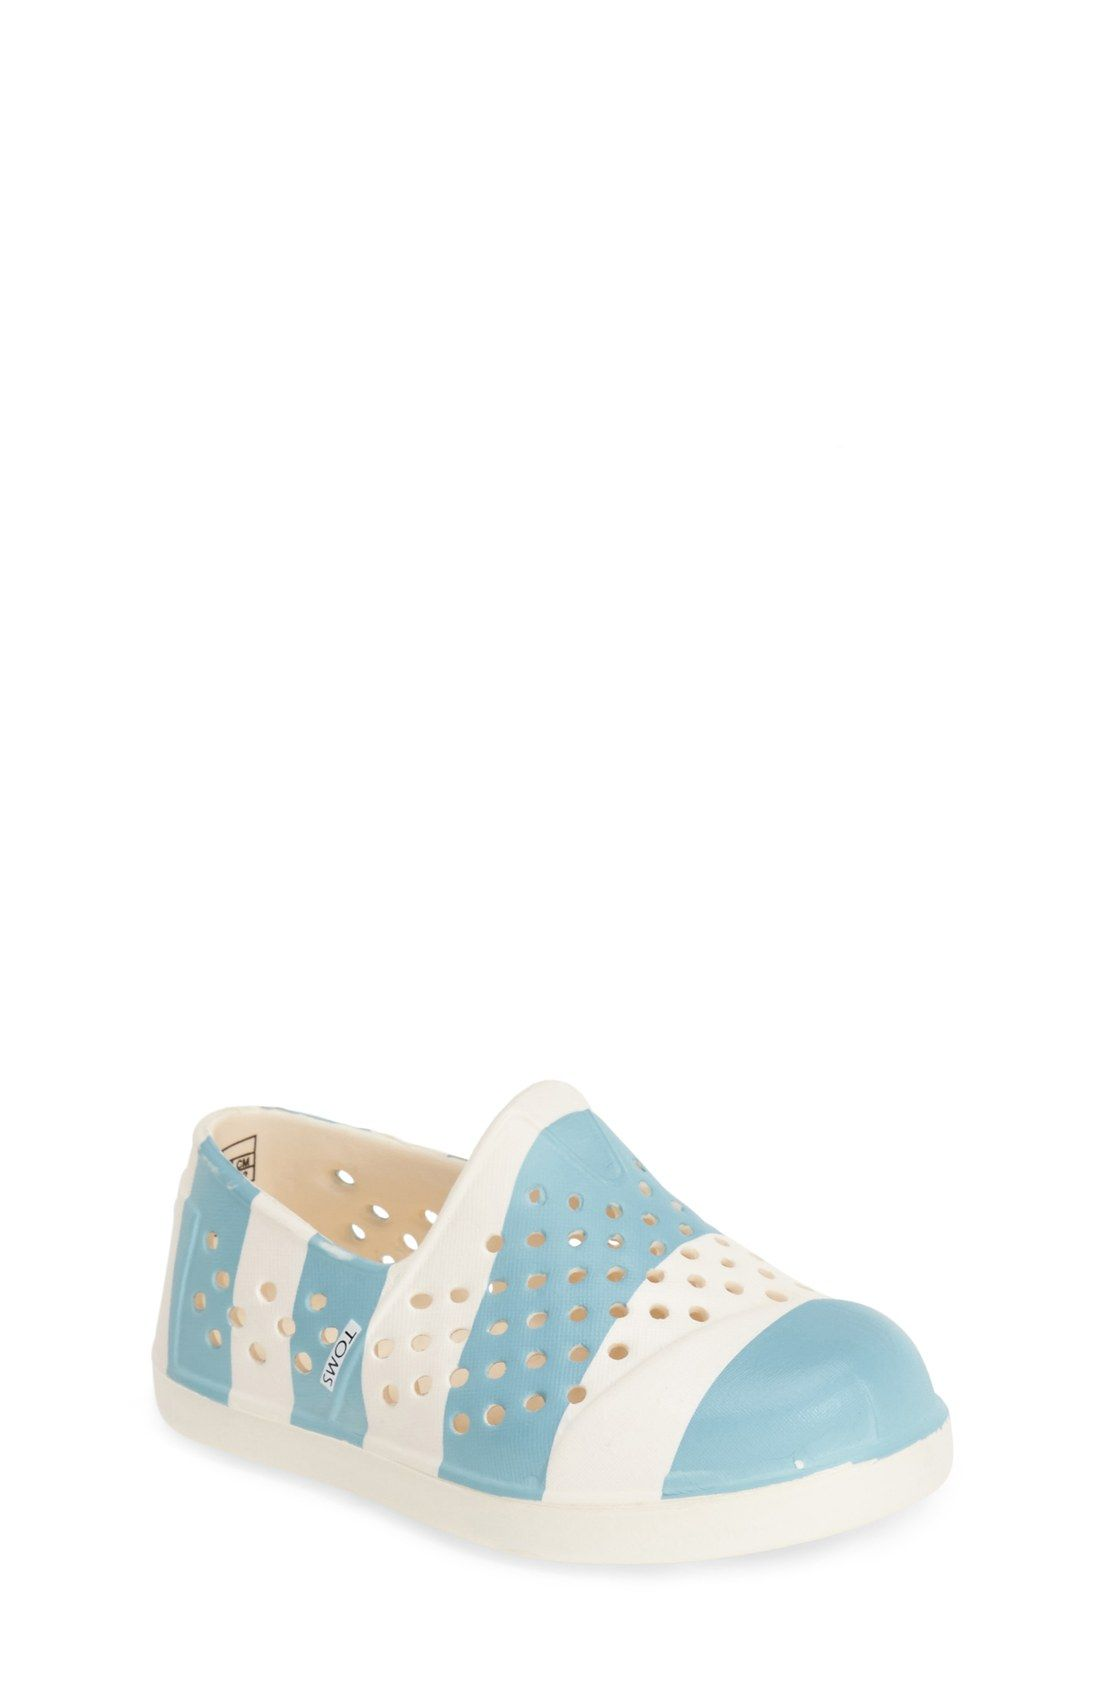 d1183025871 TOMS  Romper - Tiny  Perforated Water Friendly Slip-On (Walker   Toddler)